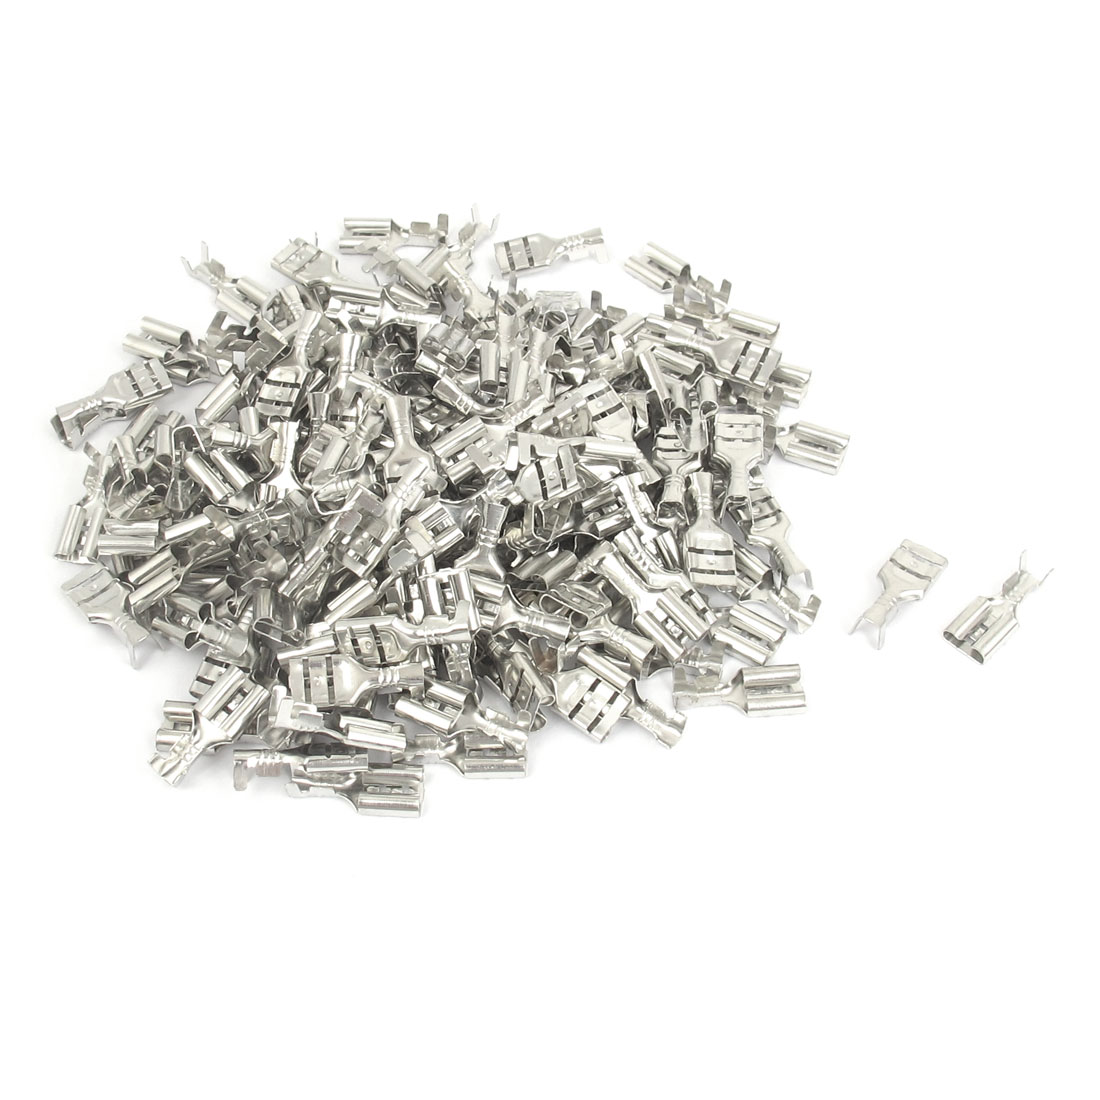 Car Speaker 6.3mm Female Spade Terminal Wire Connector Silver Tone 200pcs